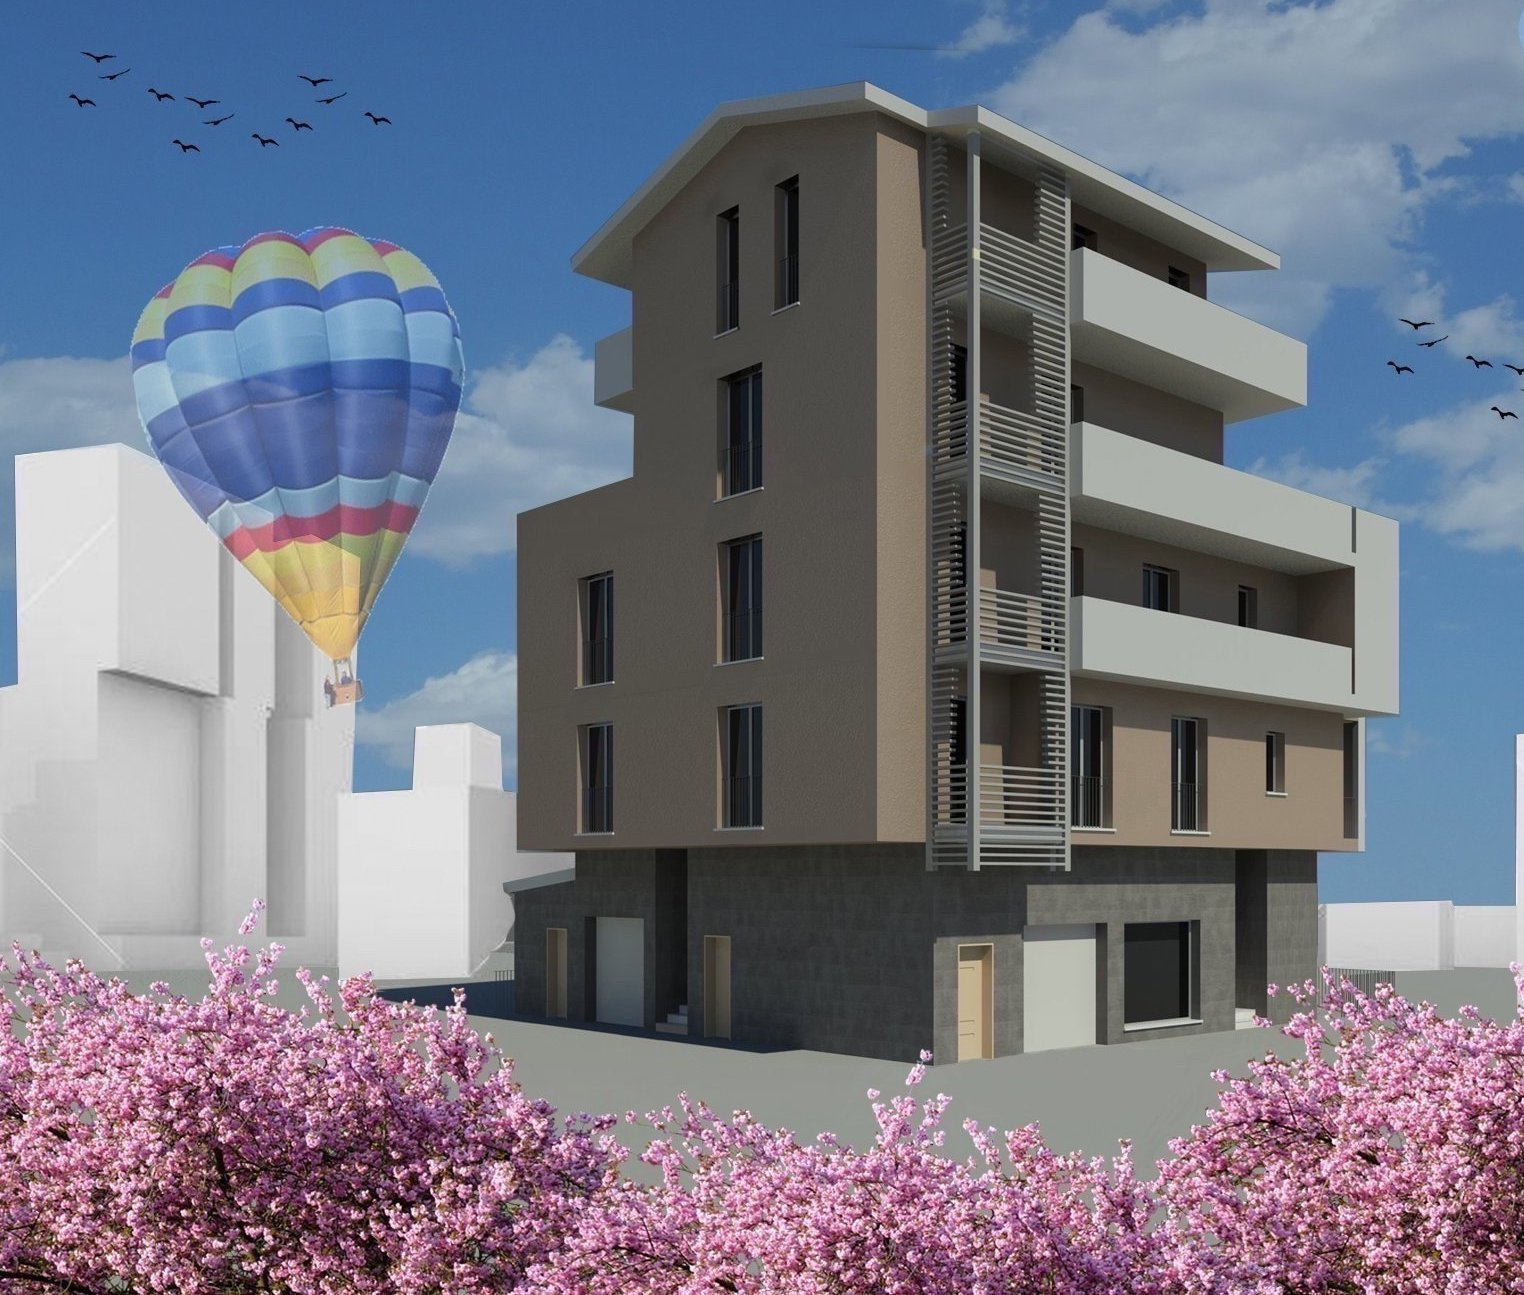 New development in Grottammare walking distance to the sea